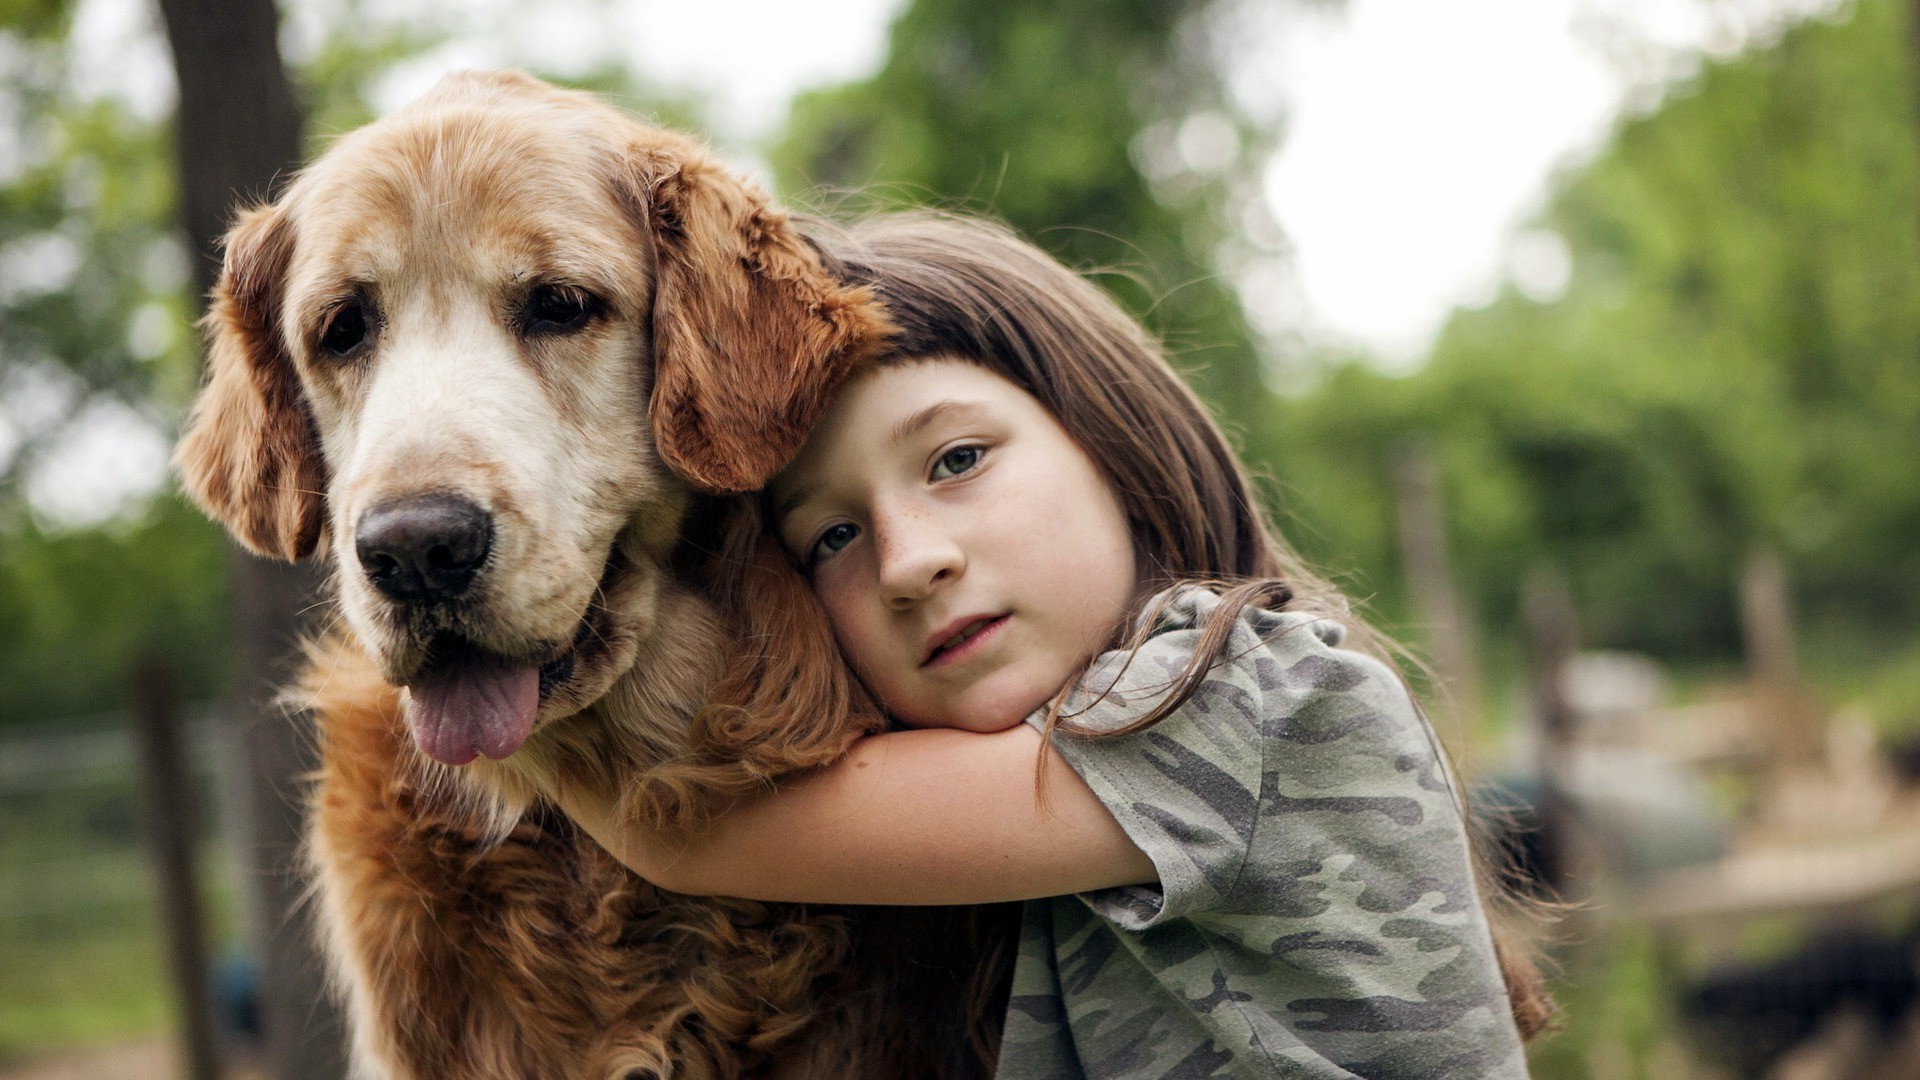 Wallpaper Perritos 3d Animals Dog Hugging Children Wallpapers Hd Desktop